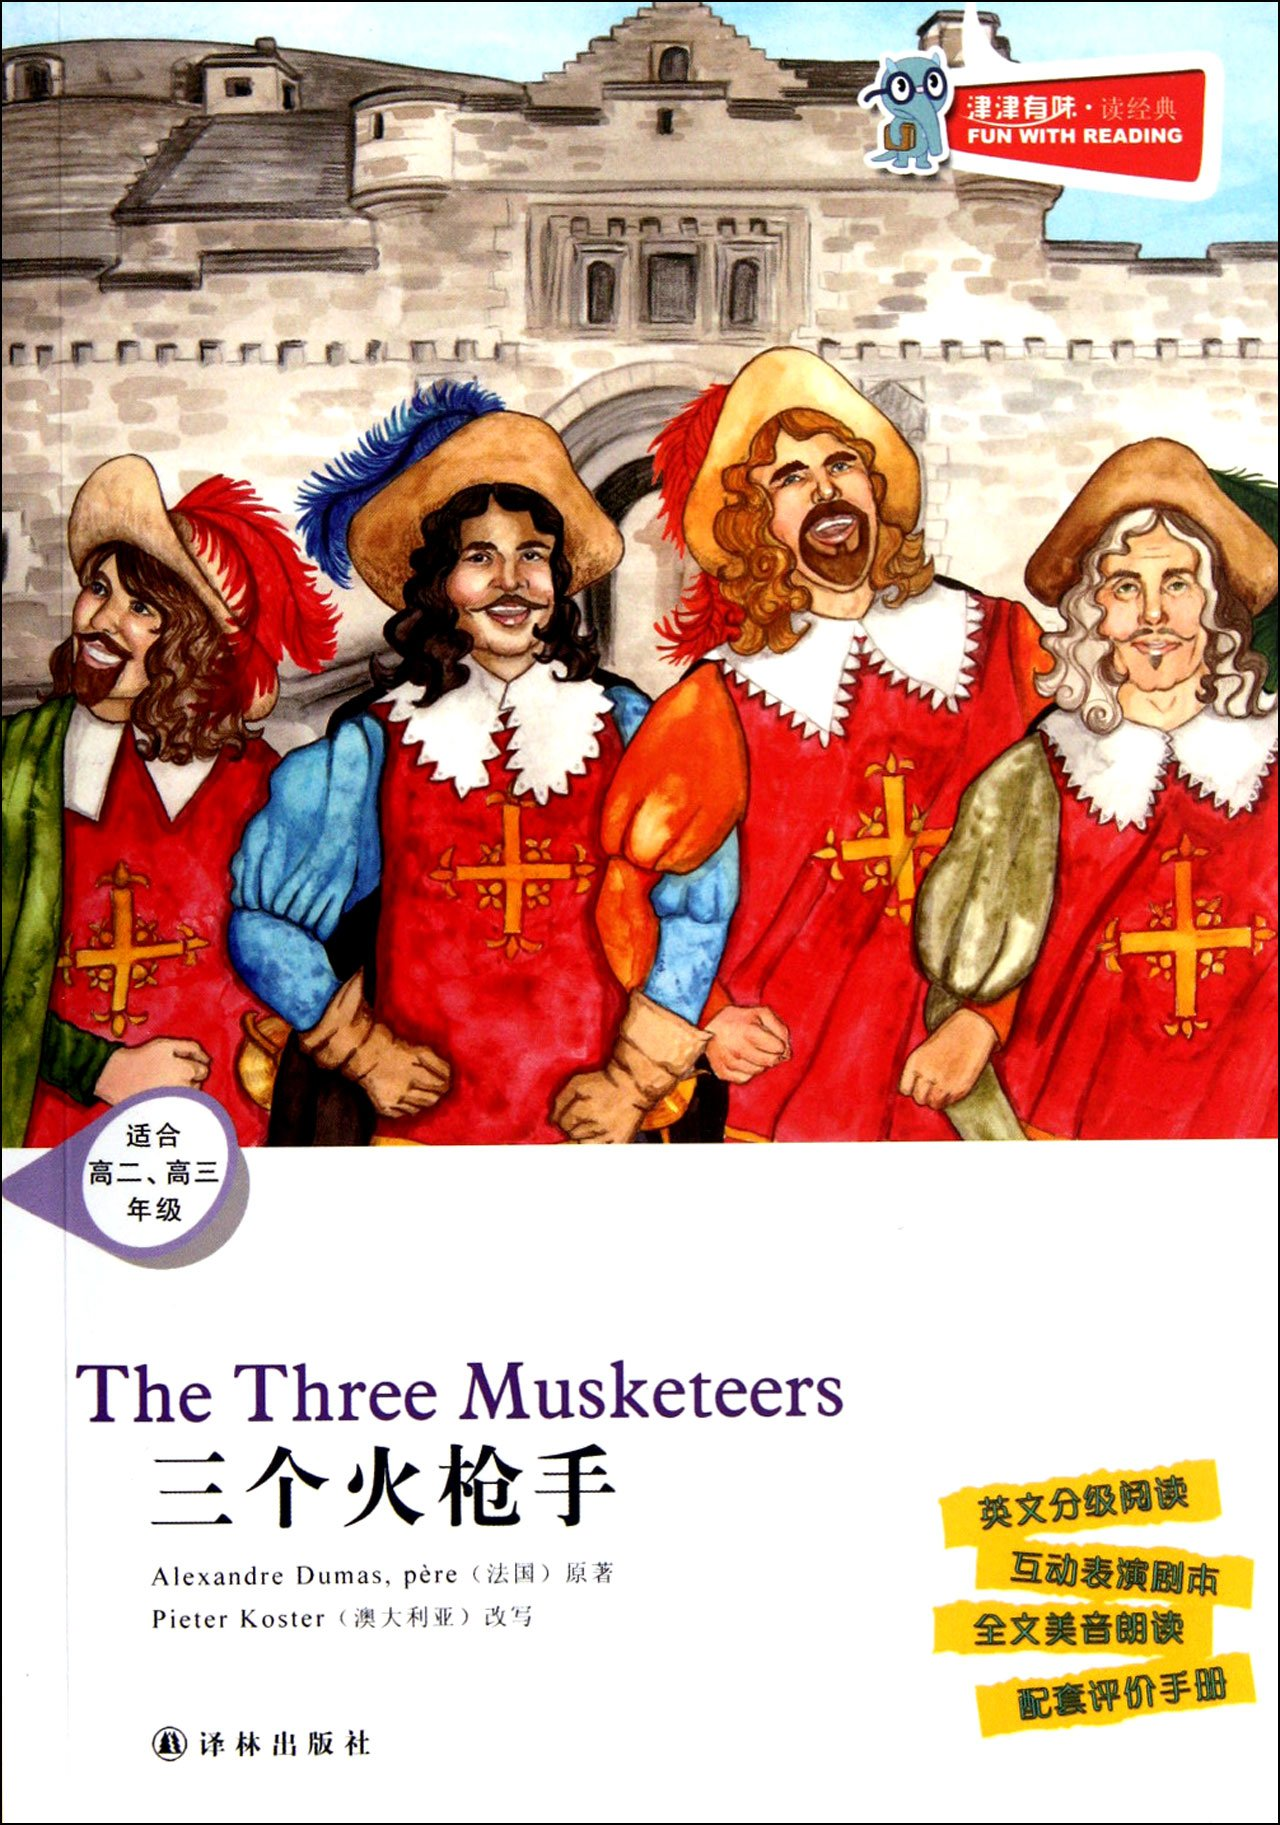 The Three Meowskeleteers Background Fortnite The Three Musketeers Chinese Edition Da Zhong Ma 9787544728430 Amazon Com Books